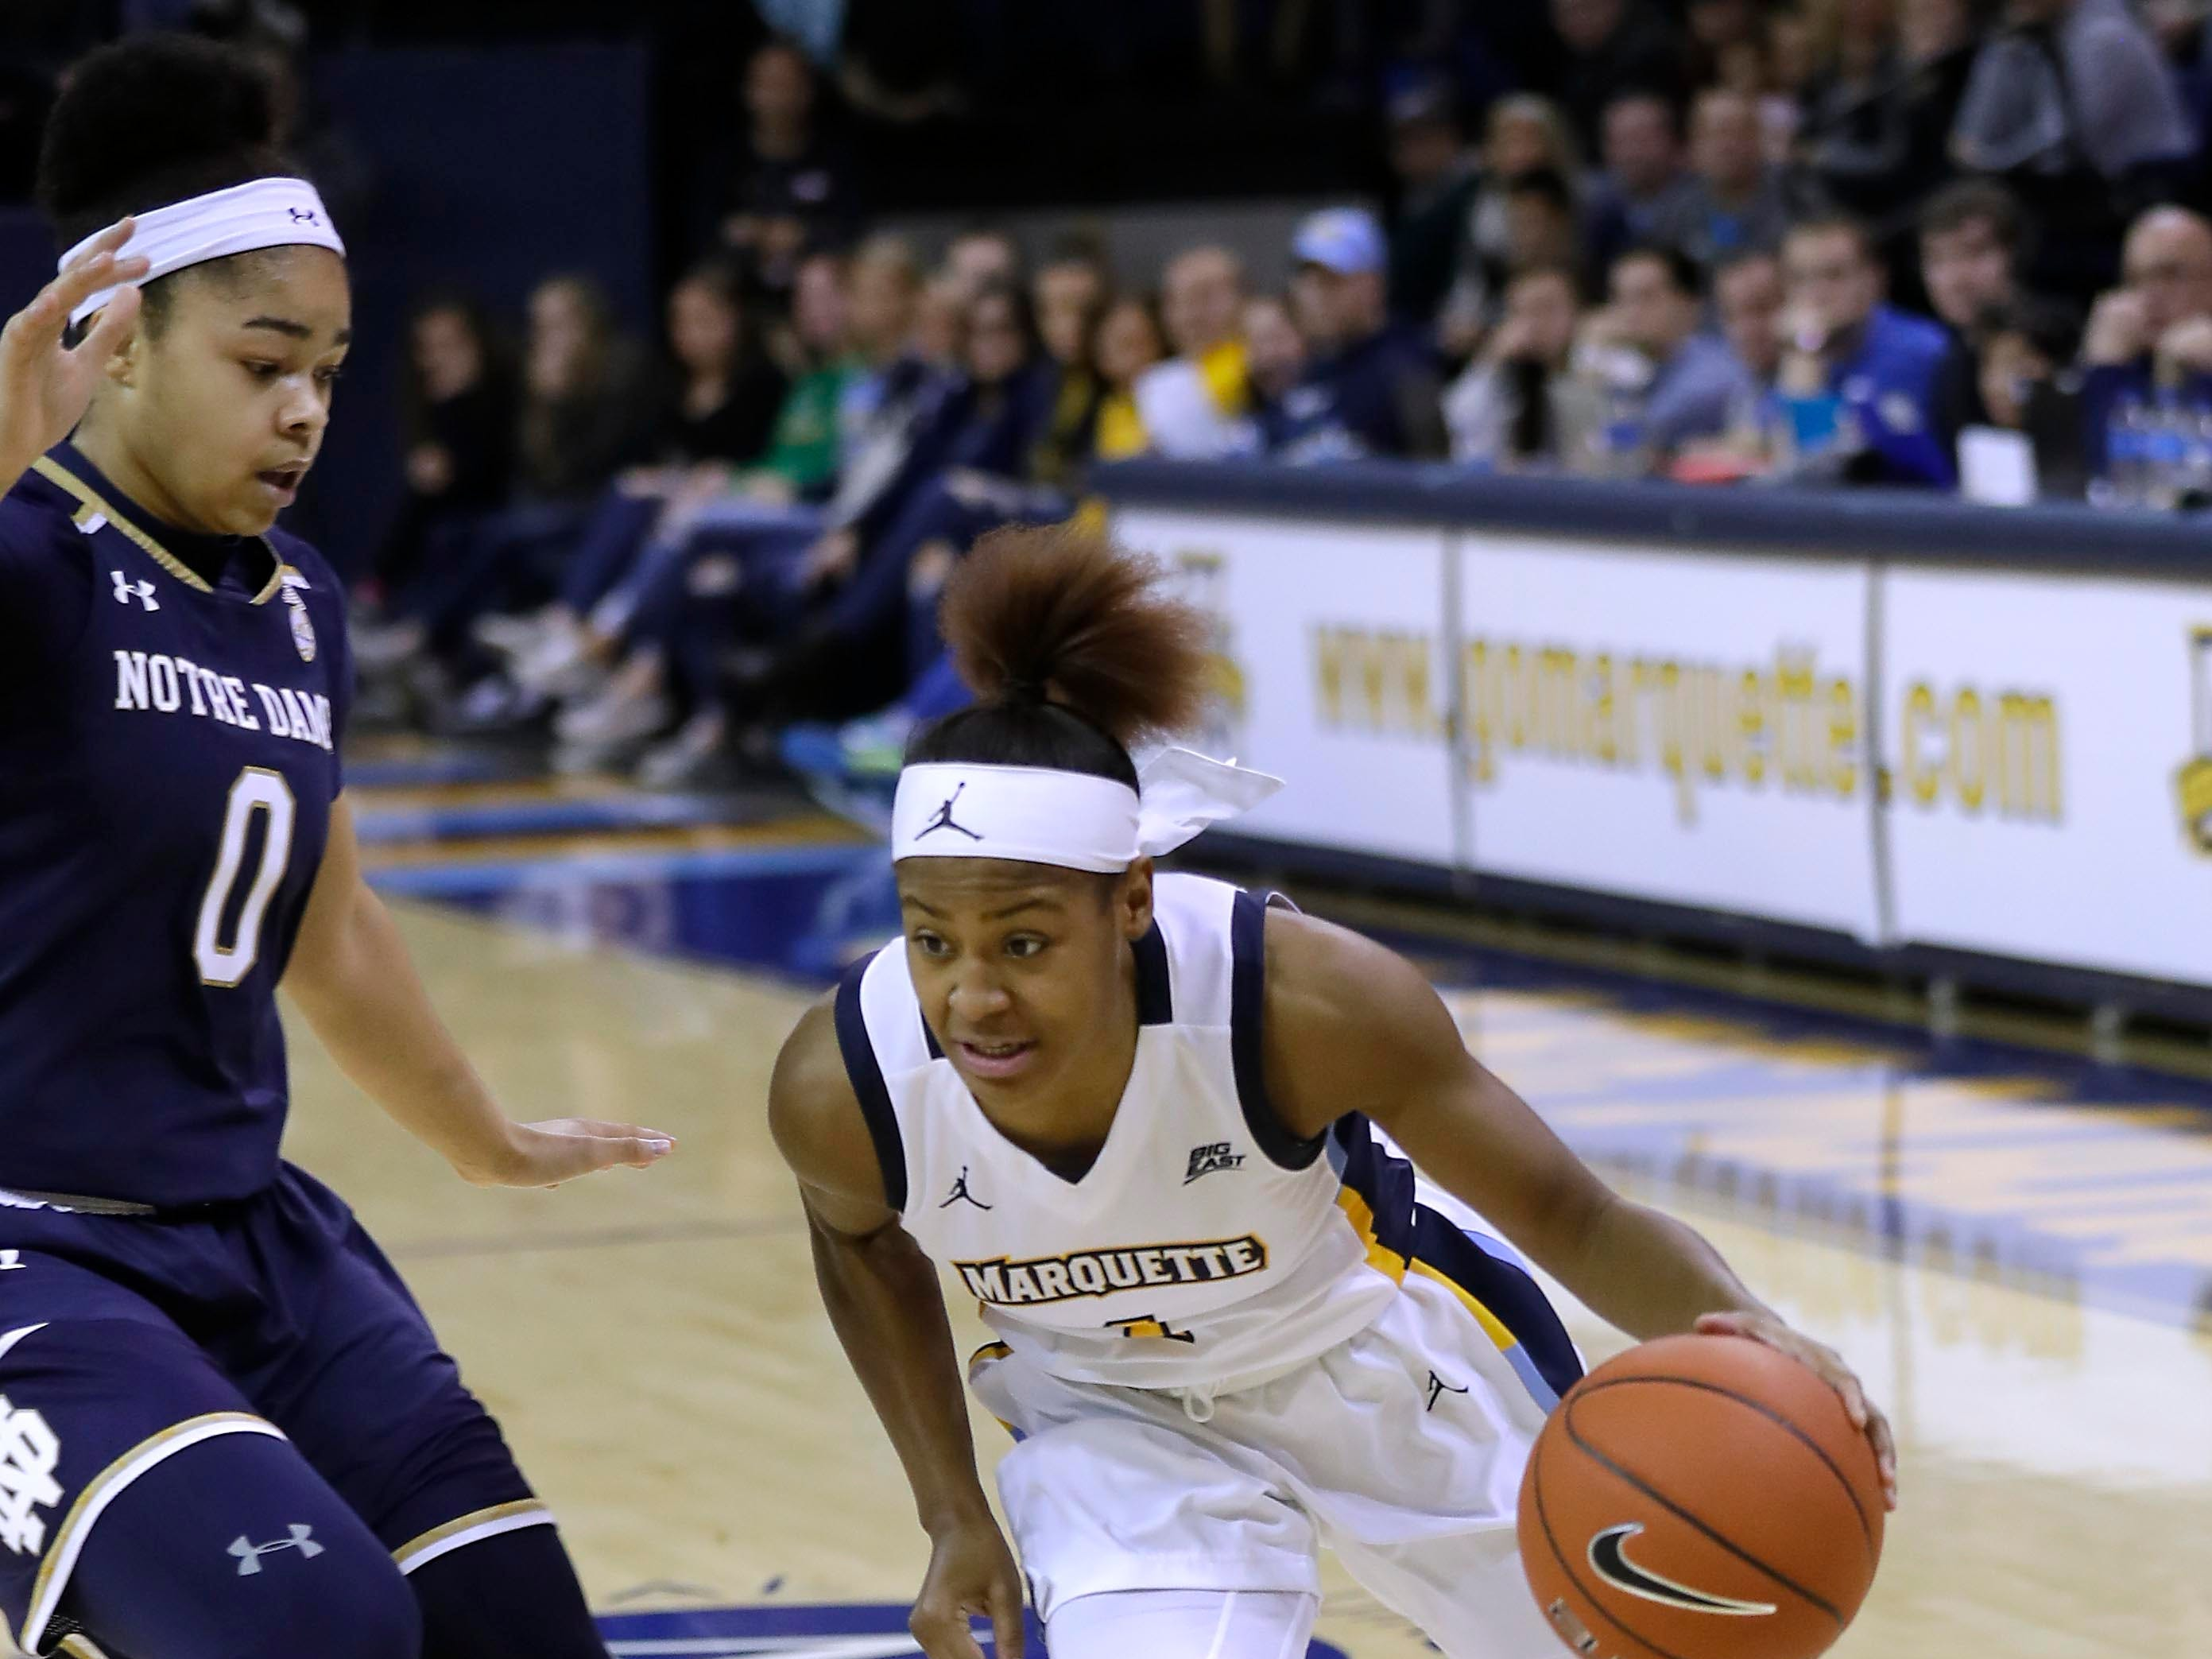 Marquette guard Danielle King drives to the basket past Notre Dame Fighting Irish guard Jordan Nixon.